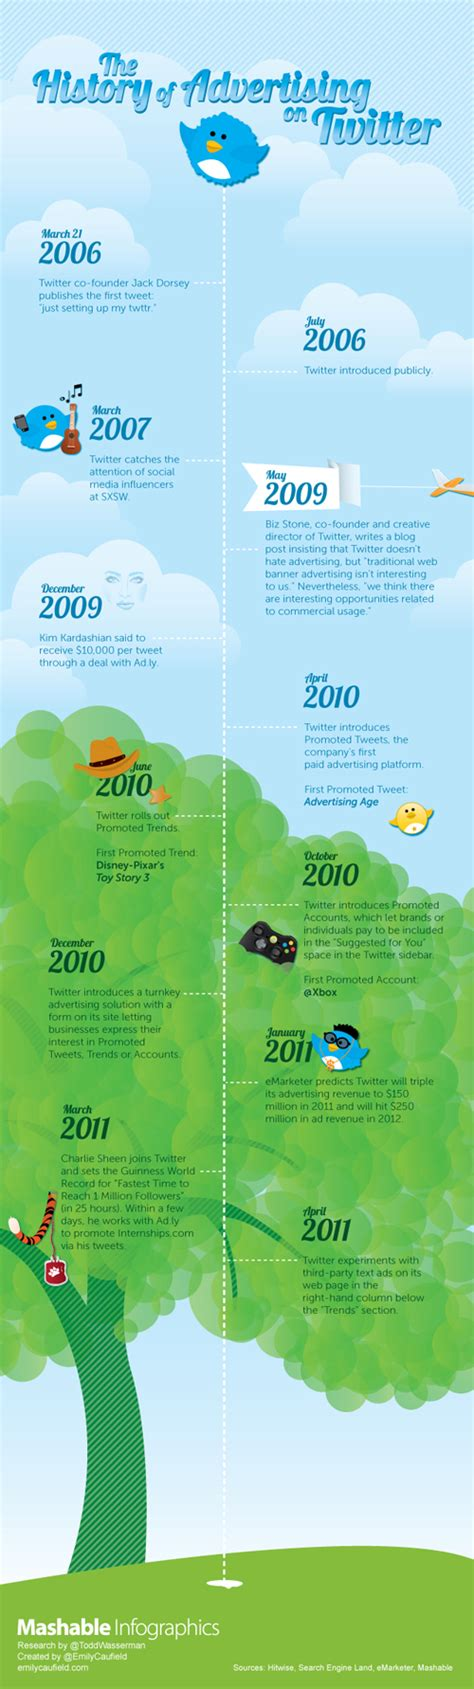 founders of twitter the history of advertising on twitter infographic best